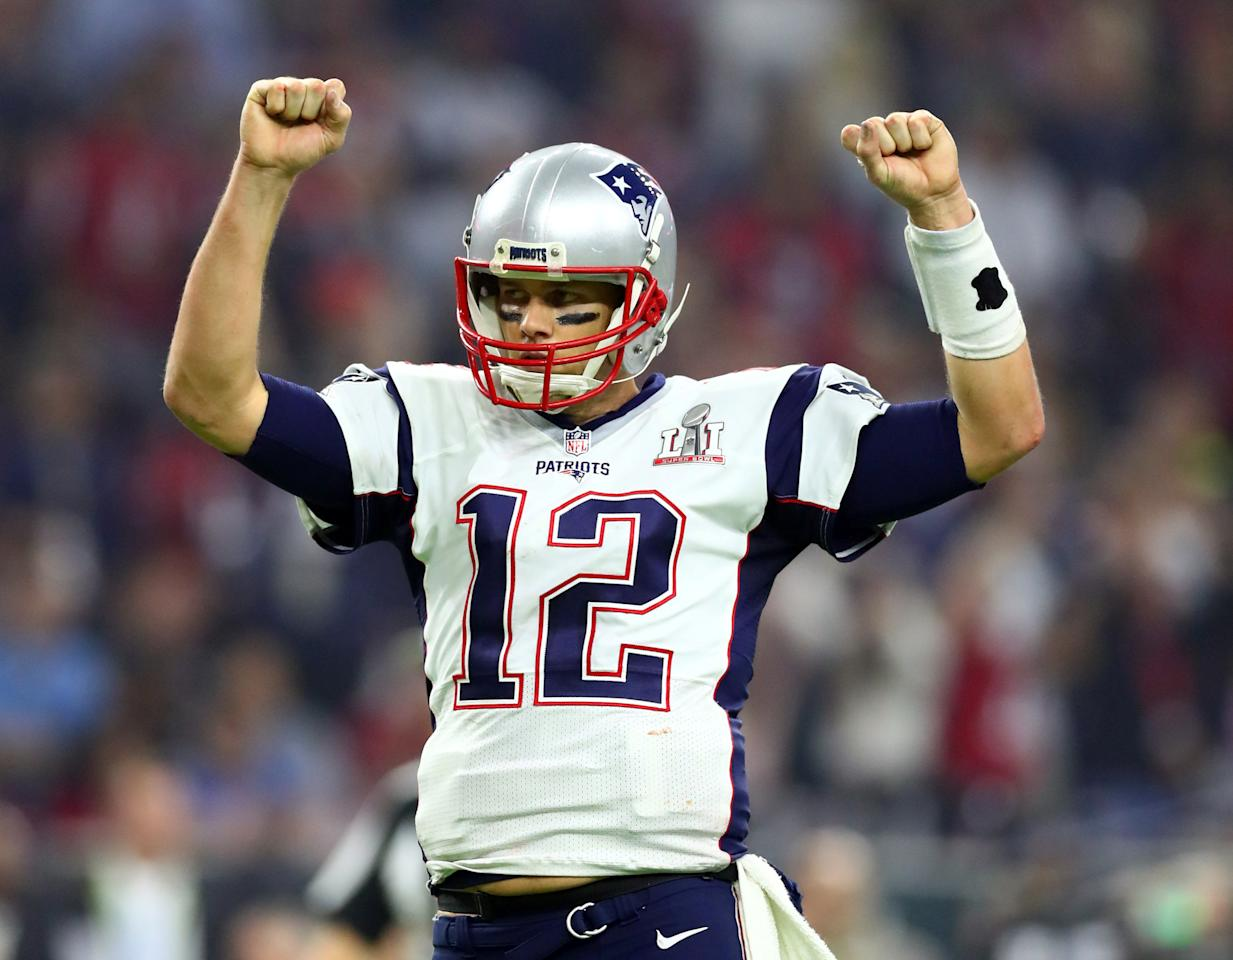 FILE PHOTO: New England Patriots quarterback Tom Brady  celebrates a two-point conversion against the Atlanta Falcons in the fourth quarter during Super Bowl LI in Houston, Texas, U.S., February 5, 2017.  Mandatory Credit: Mark J. Rebilas-USA TODAY Sports/File Photo